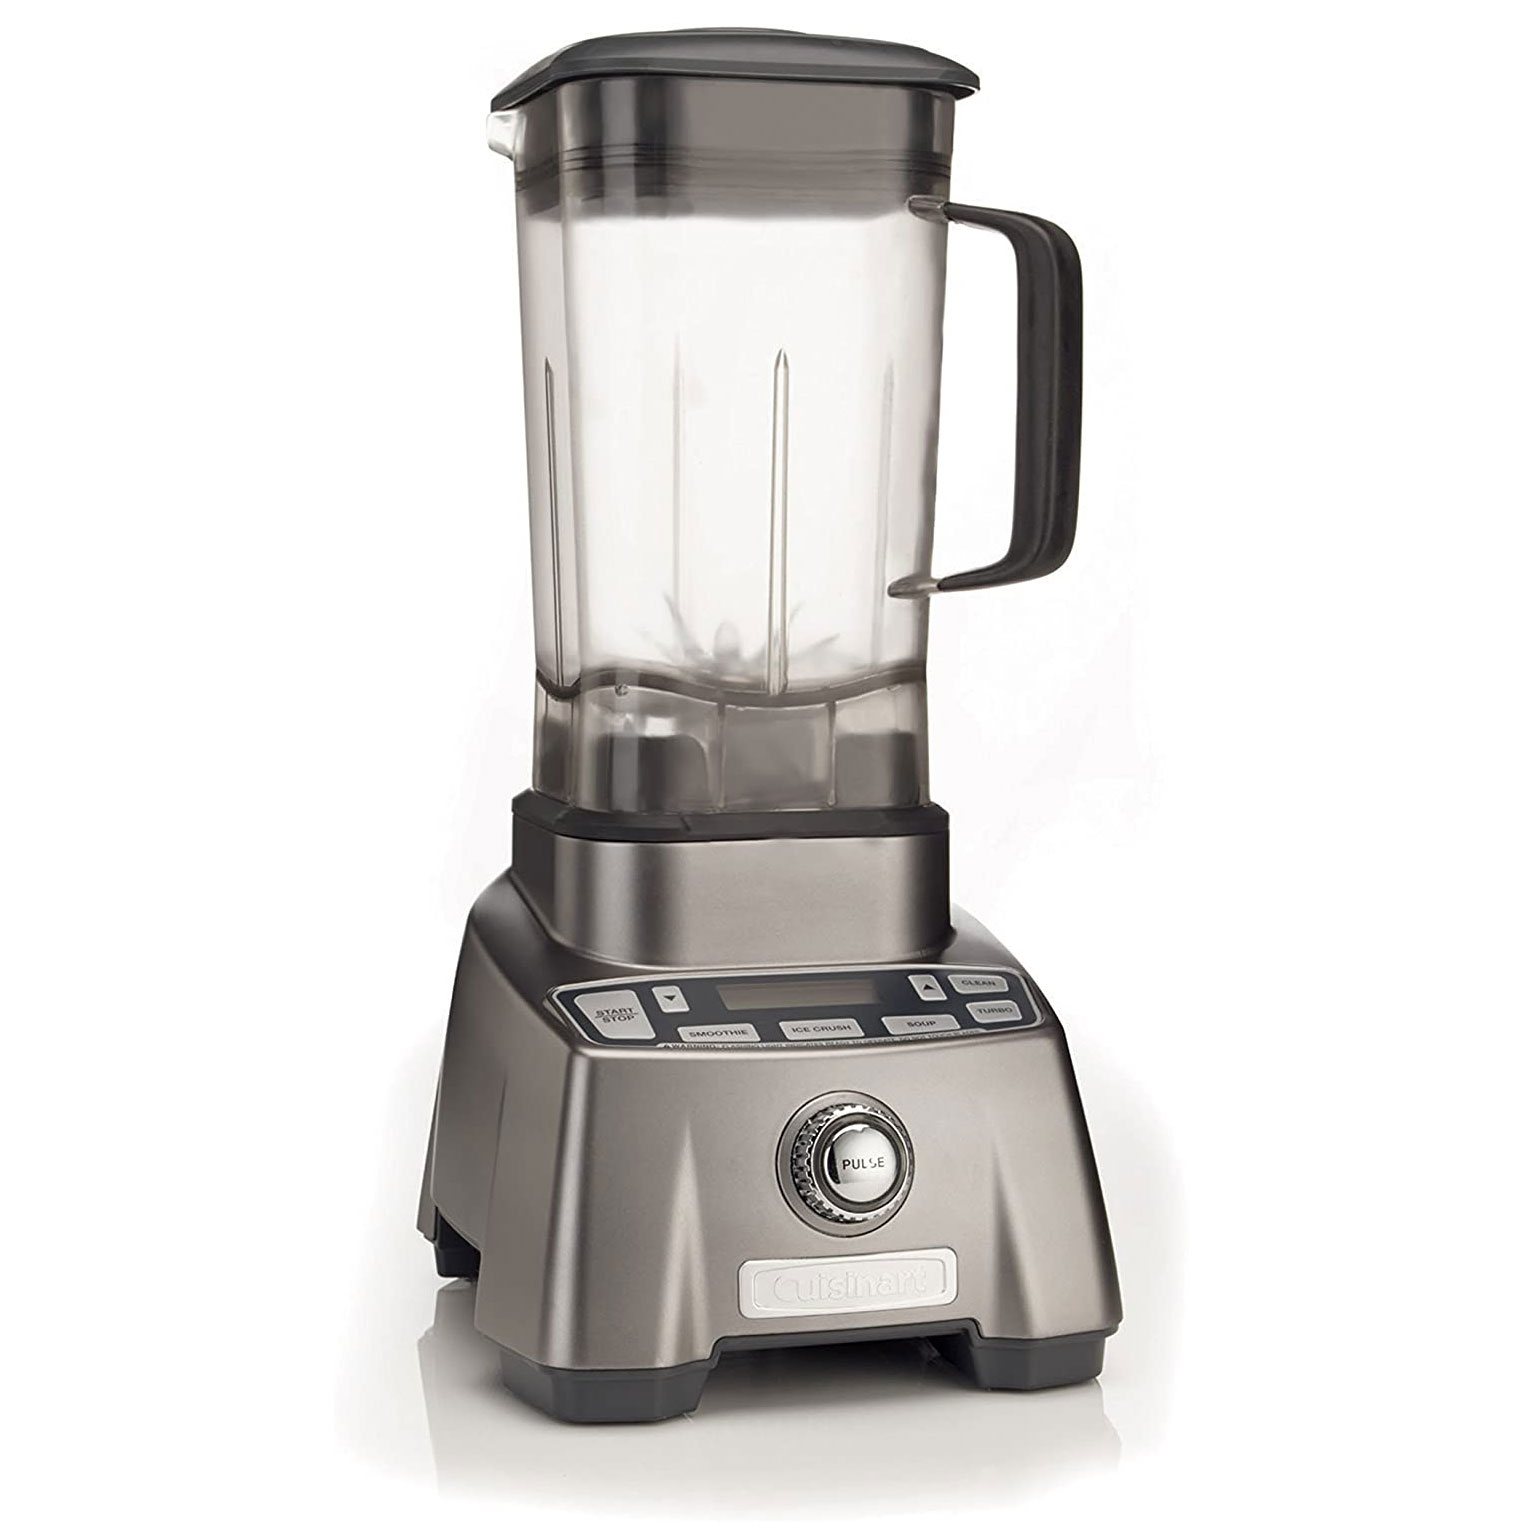 Cuisinart Blender with metal base on white background